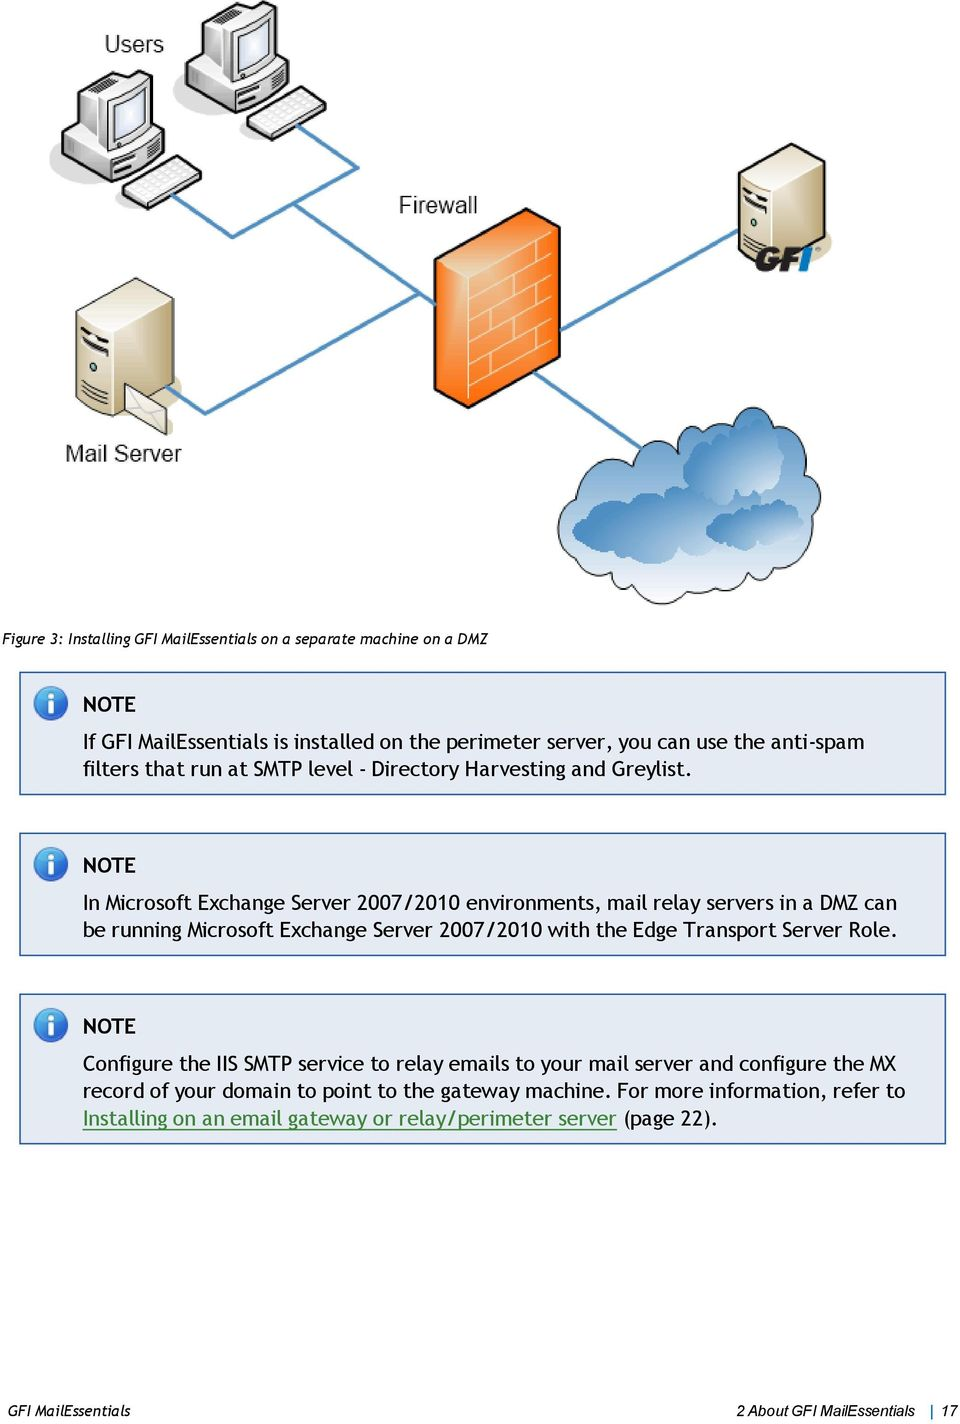 In Microsoft Exchange Server 2007/2010 environments, mail relay servers in a DMZ can be running Microsoft Exchange Server 2007/2010 with the Edge Transport Server Role.